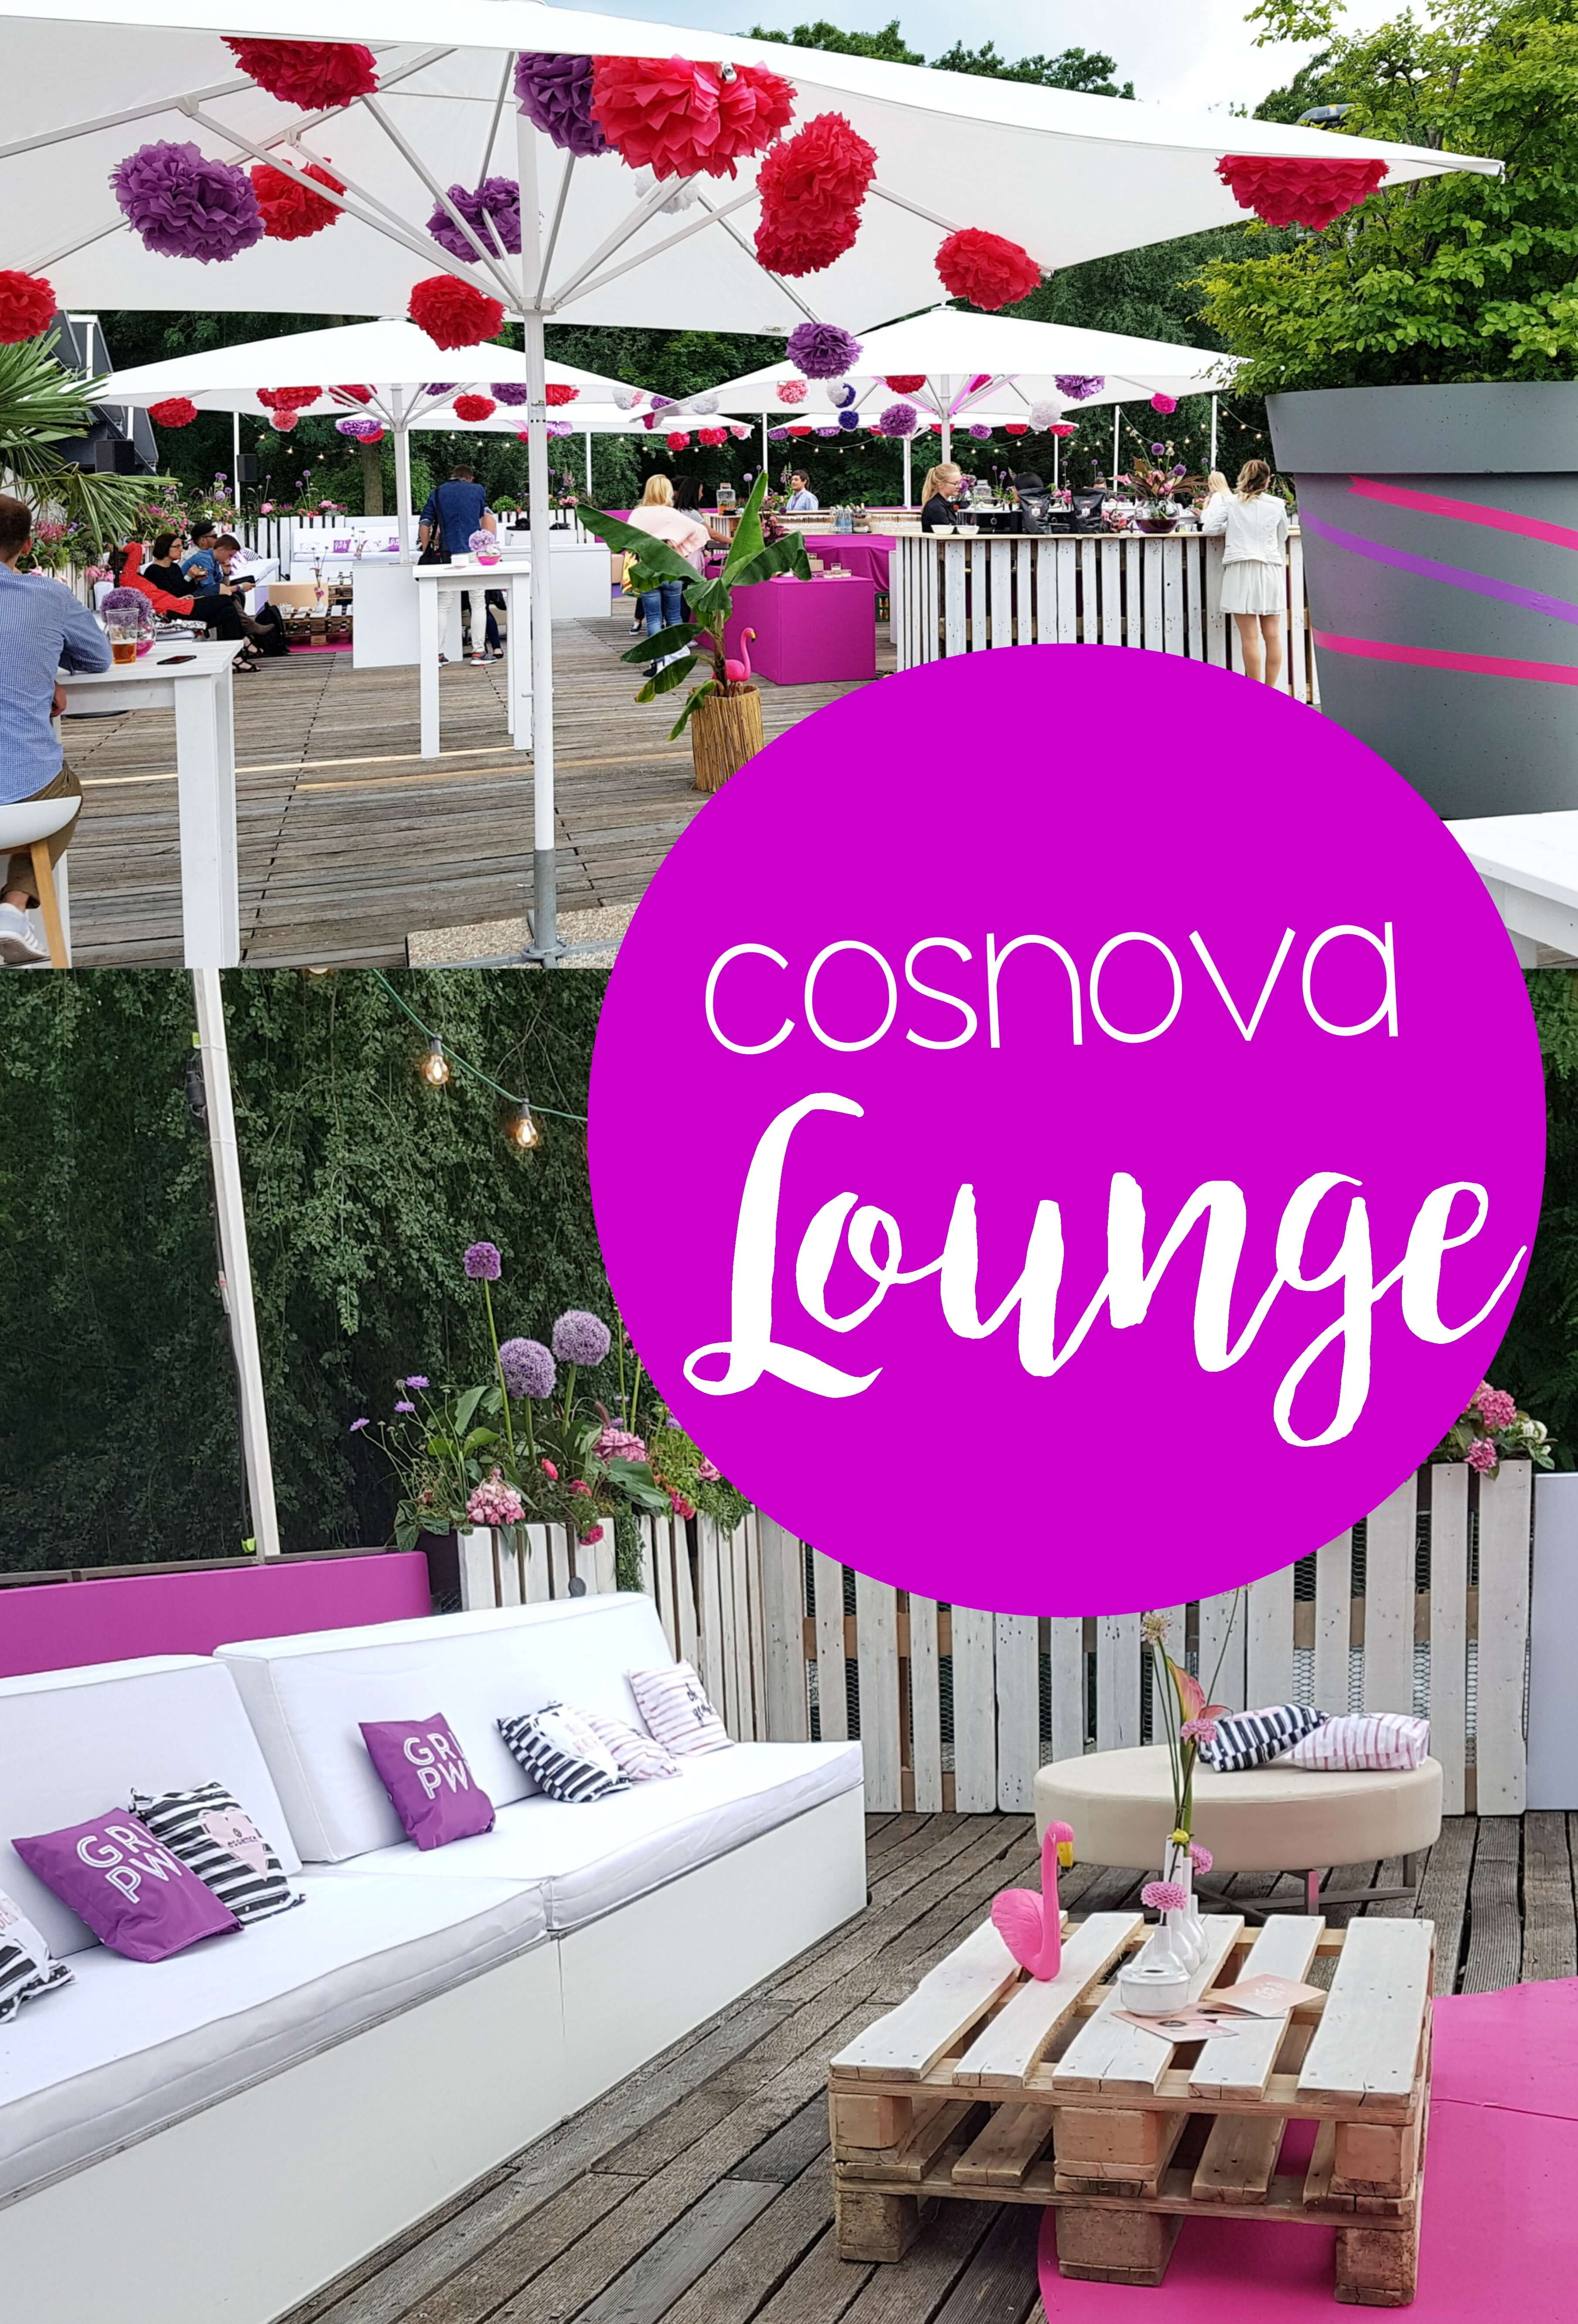 essence Birthday Bash Cosnova Lounge tantedine